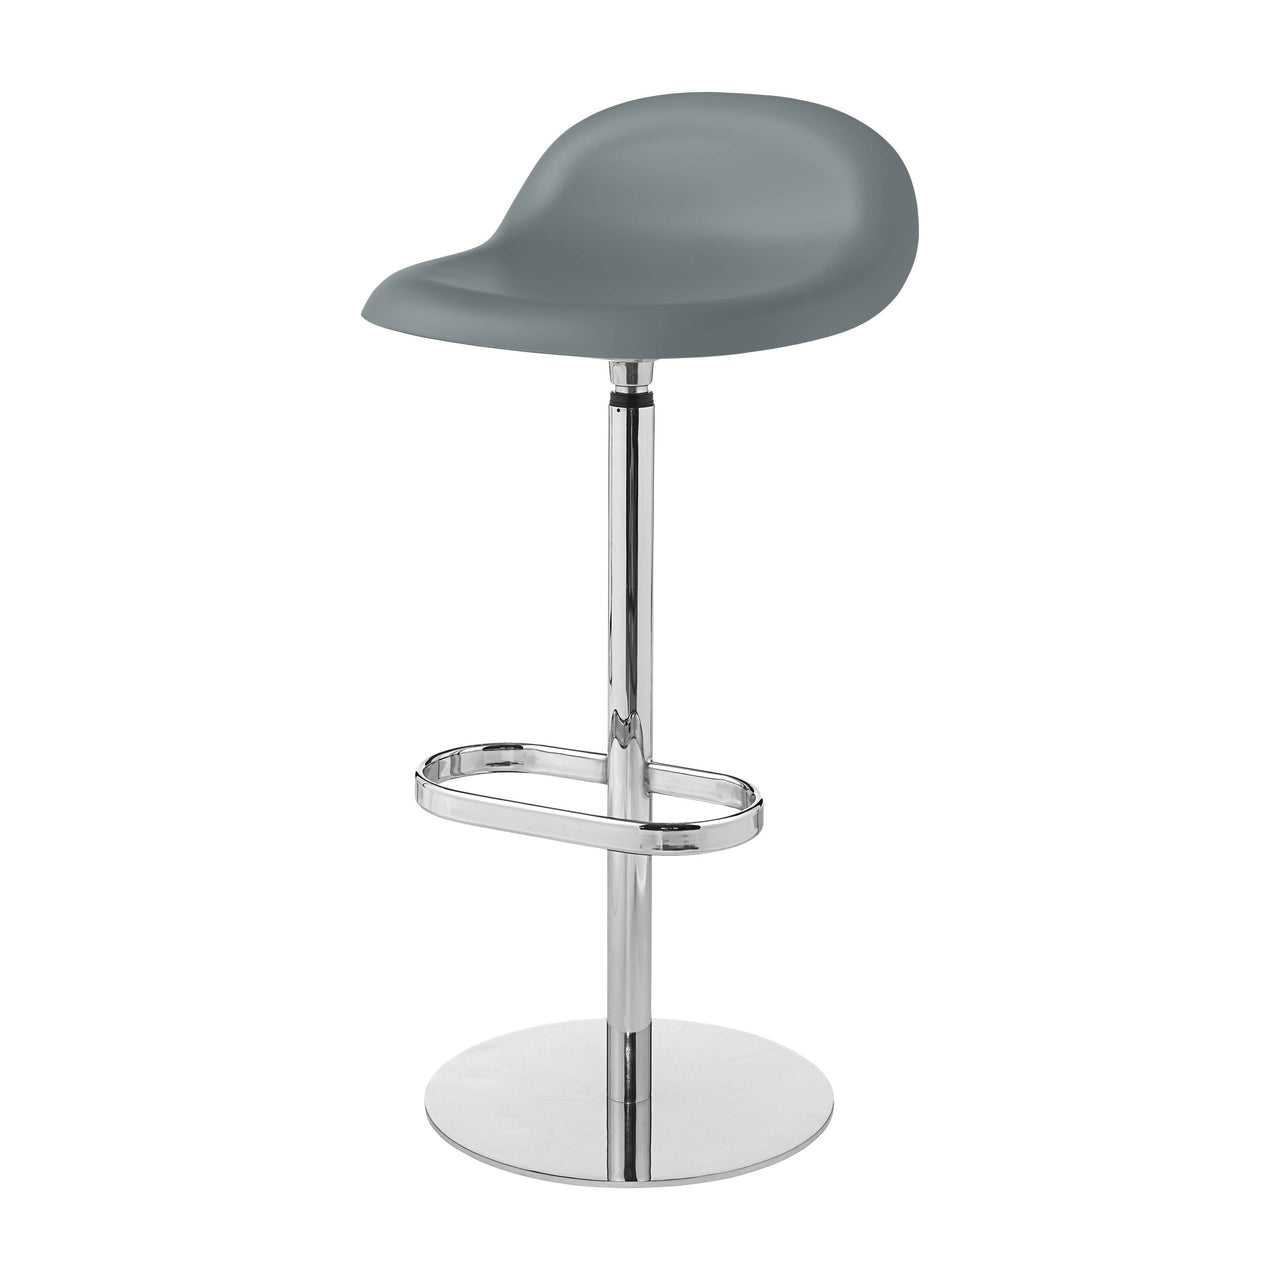 3D Bar Stool: Swivel Base + Rainy Grey